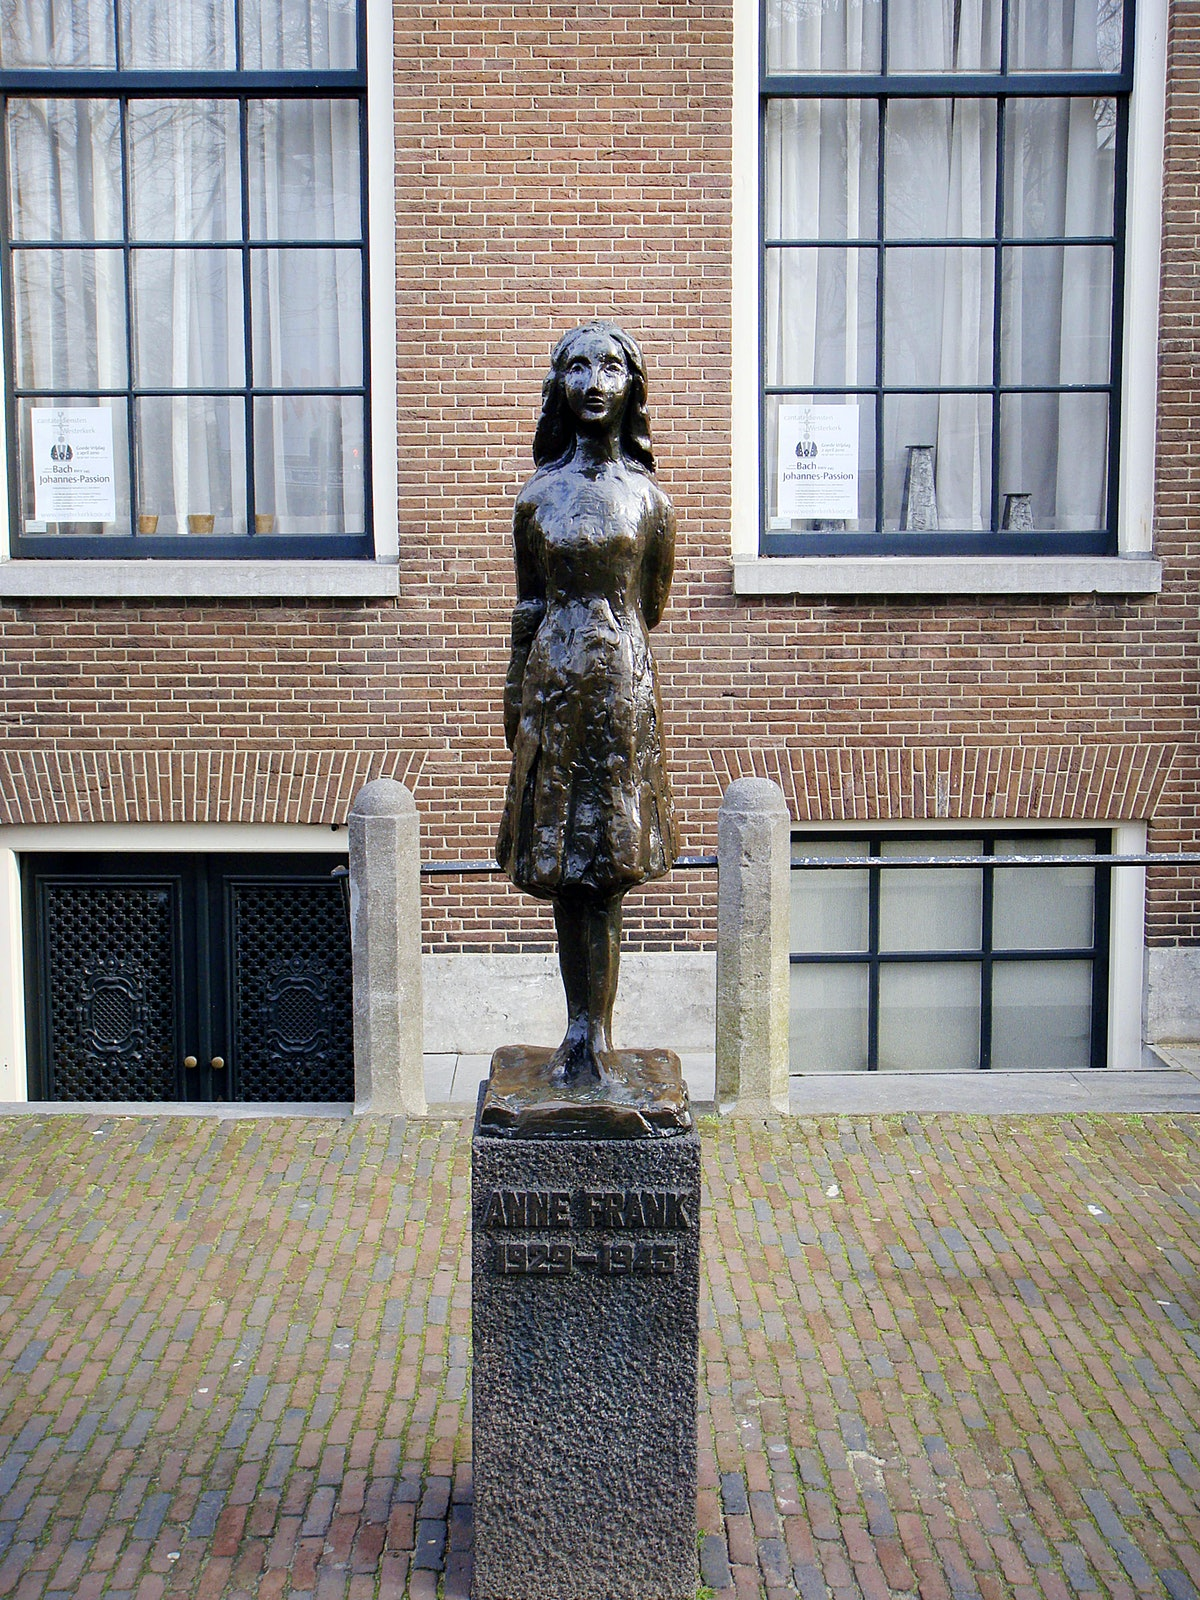 Amsterdam, Netherlands - April 5, 2010. The Anne Frank memorial statue in Amsterdam.